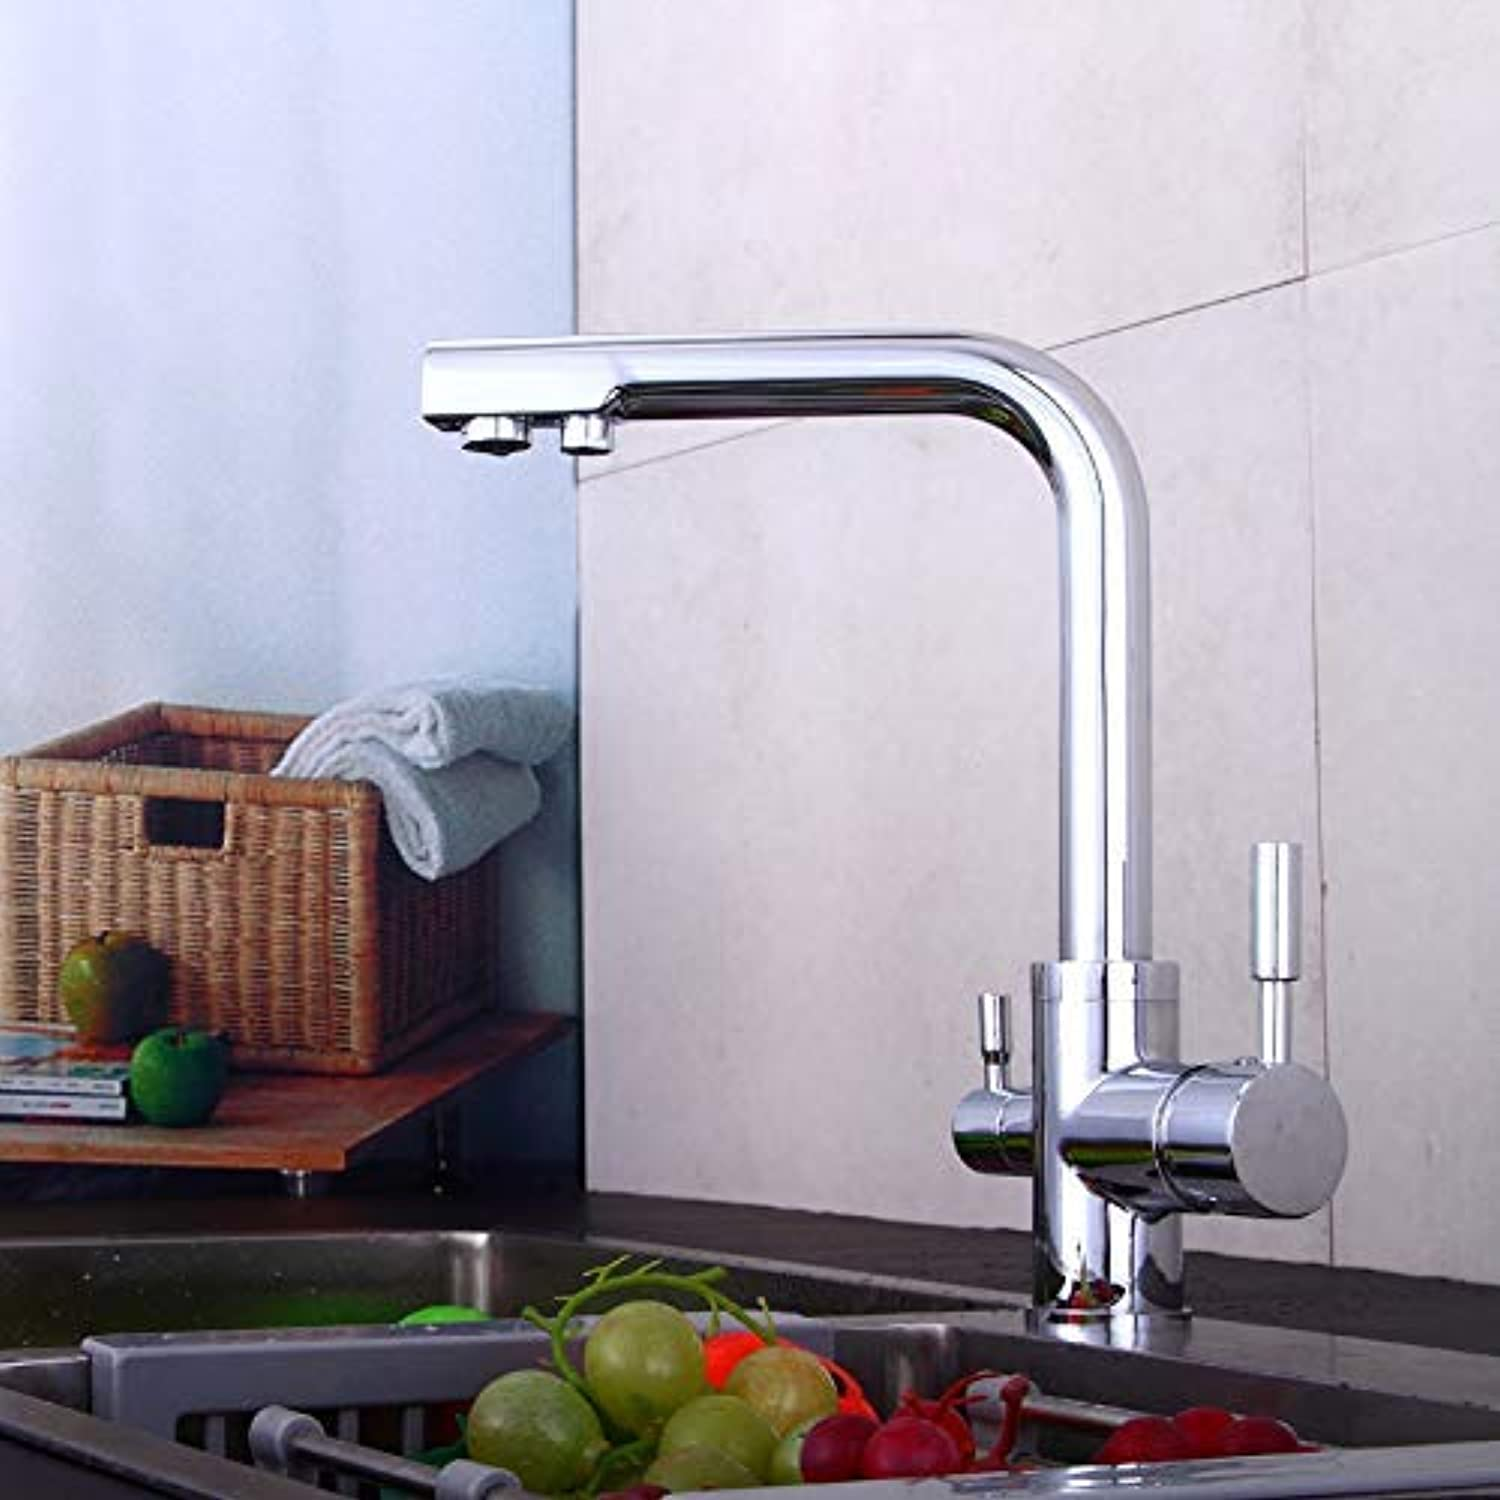 XINXI HOME Taps Faucet Kitchen Sink Kitchen Hot And Cold Faucet Kitchen Hot And Cold Faucet Dish Basin Faucet Spring Pull